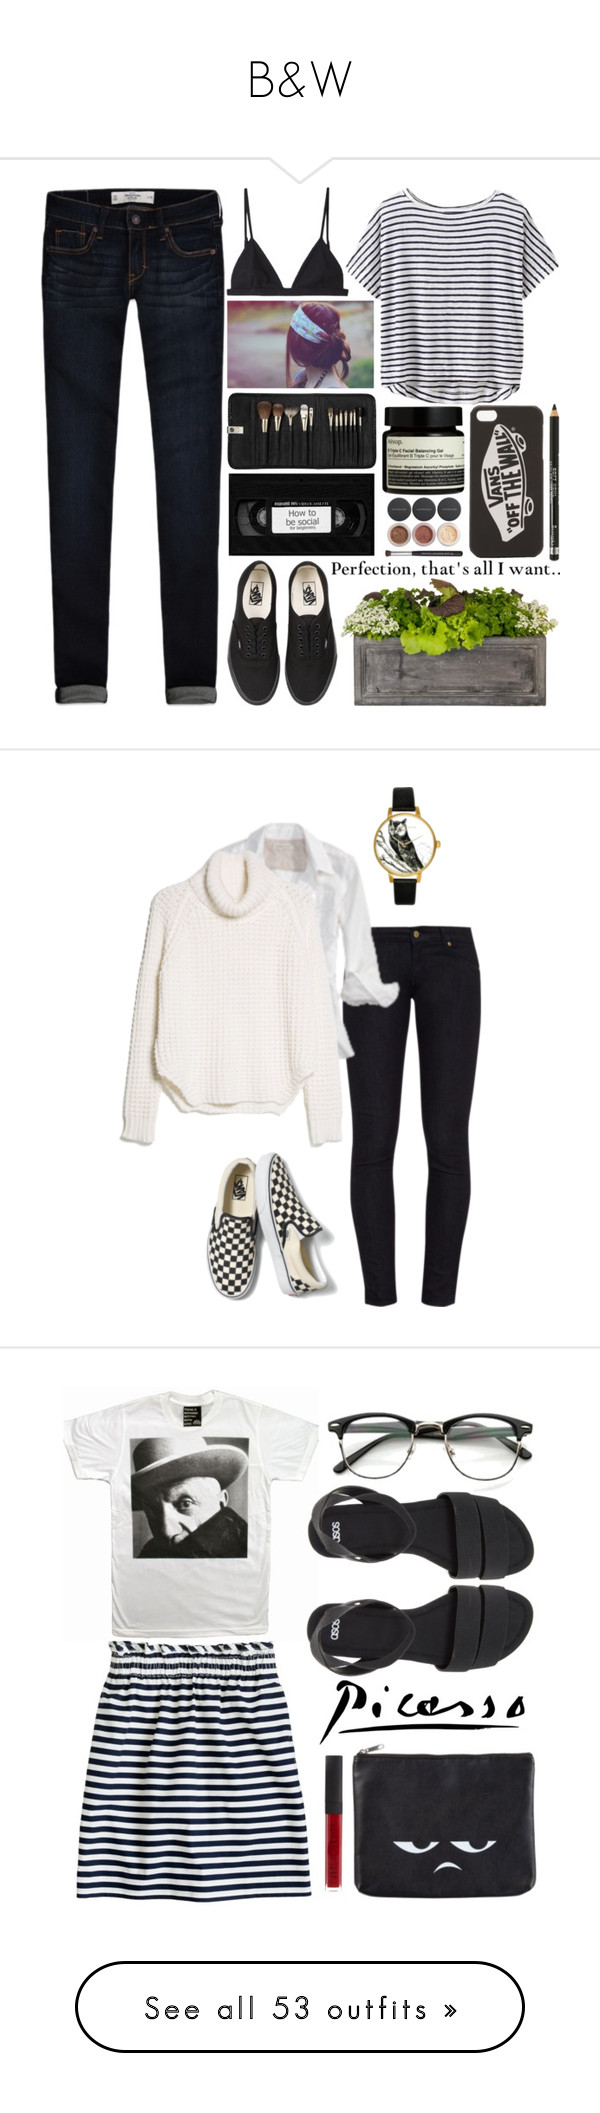 """""""B&W"""" by winkiefingers ❤ liked on Polyvore featuring Abercrombie & Fitch, Athleta, T By Alexander Wang, Vans, Aesop, Bare Escentuals, Sephora Collection, Rimmel, Jayson Home and raeleespenguin"""